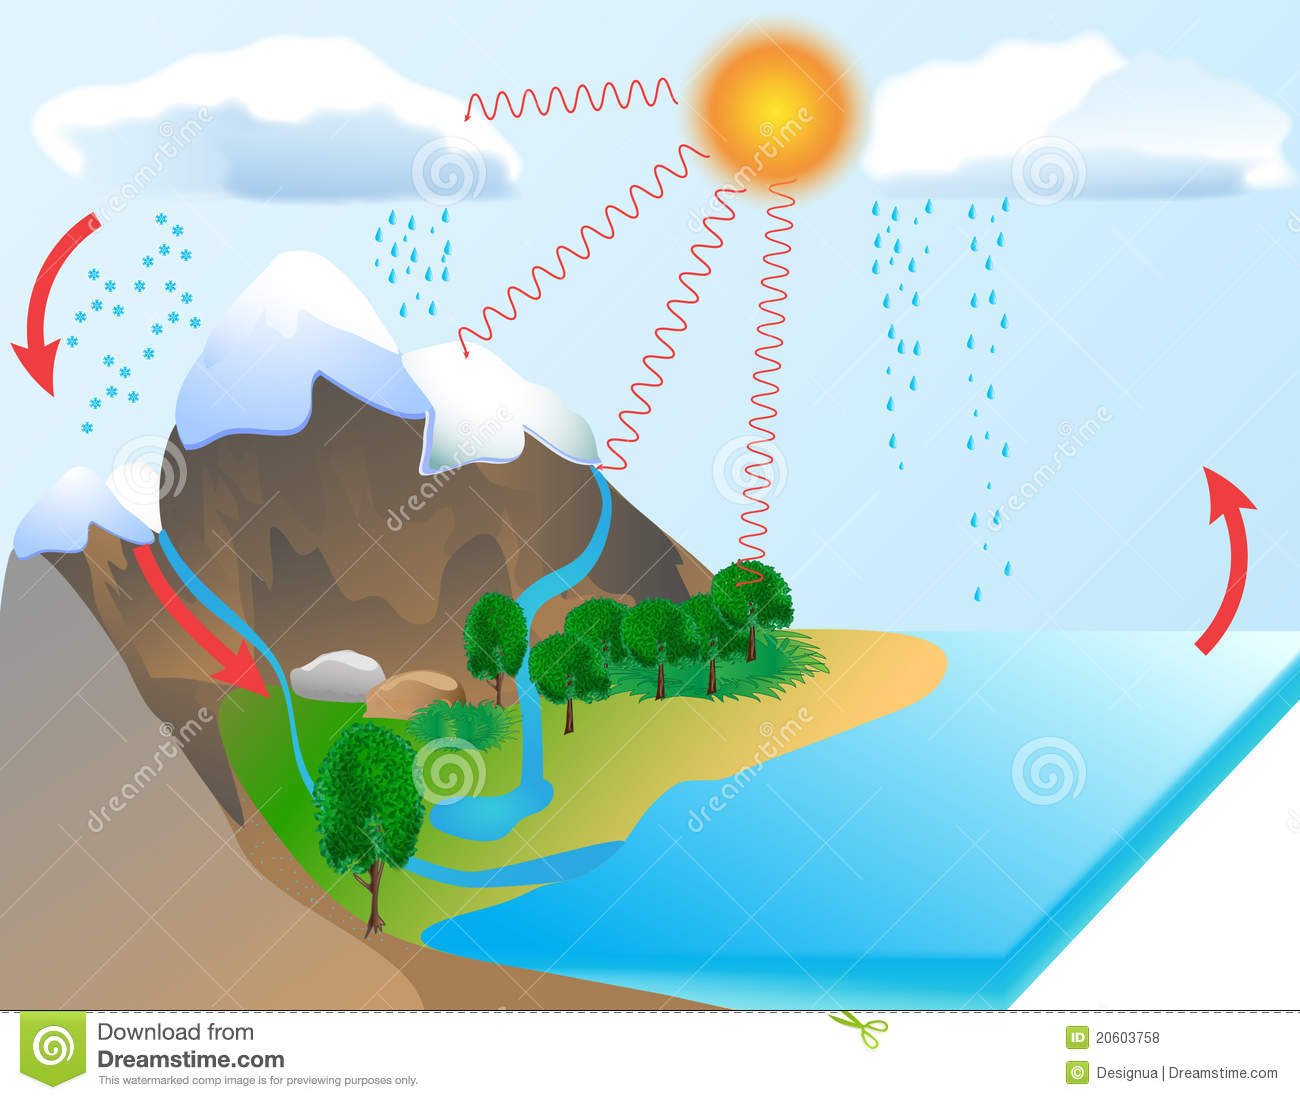 Evaporation Clipart Water Cycle Royalty Free Stock